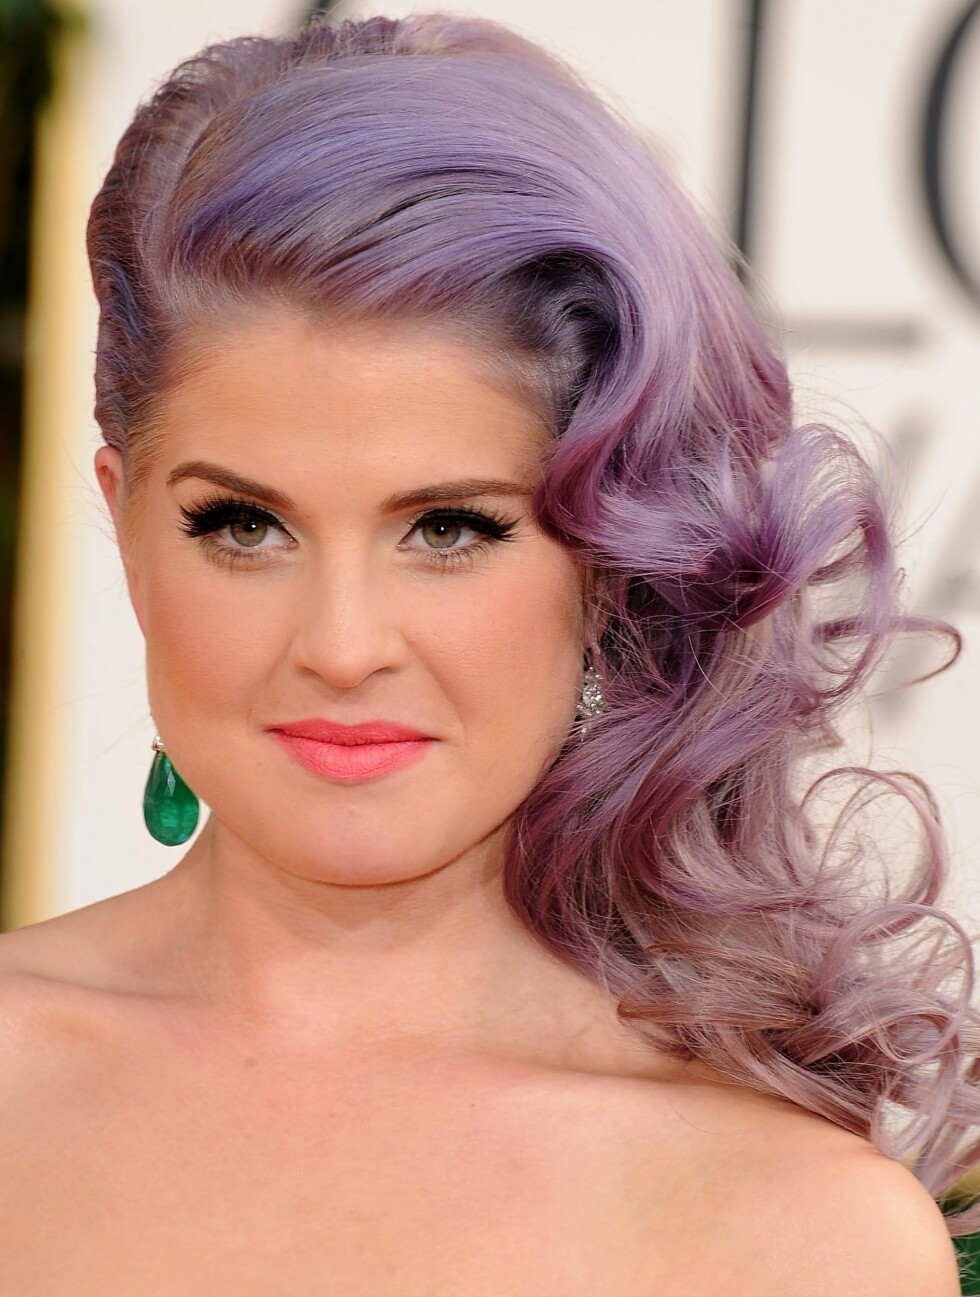 KELLY OSBOURNE - RUNDT ANSIKT Foto: All Over Press